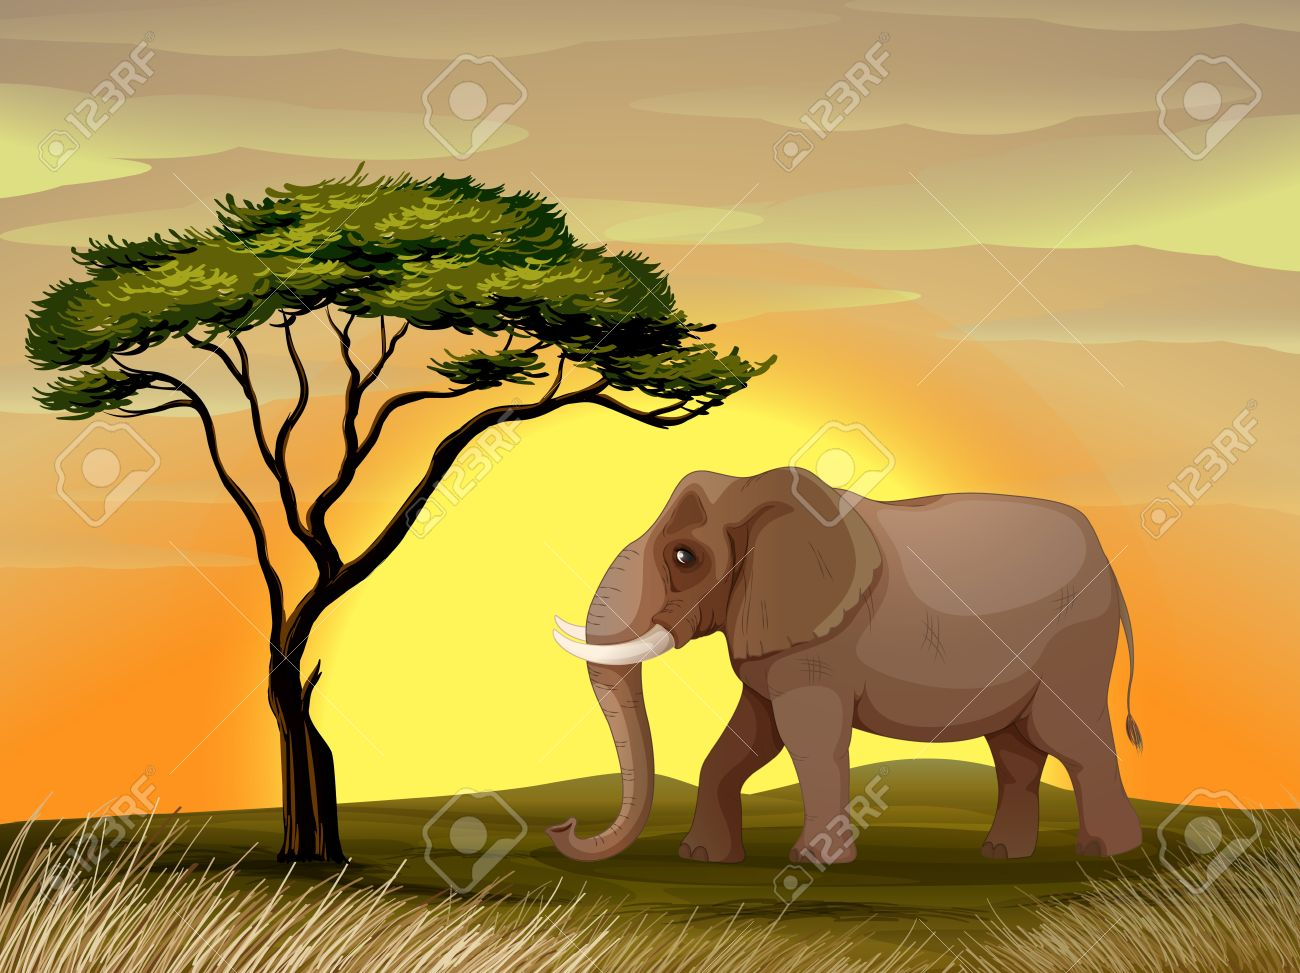 illustration of a Elephant standing under a tree Stock Vector - 14871561